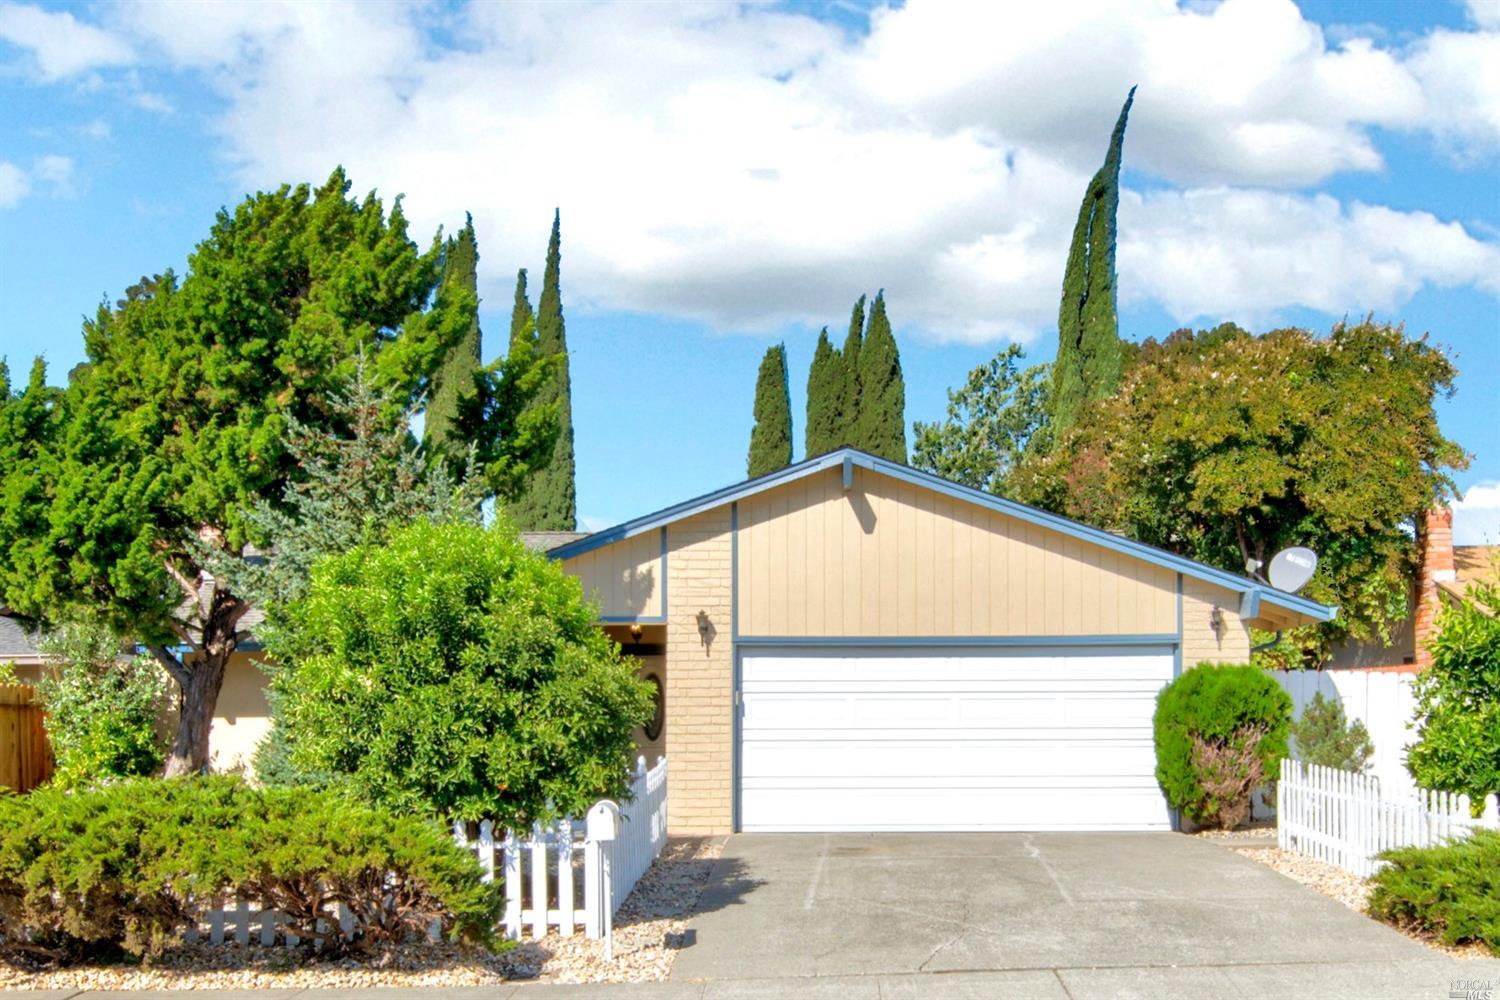 112 Edwin Dr., Vacaville*